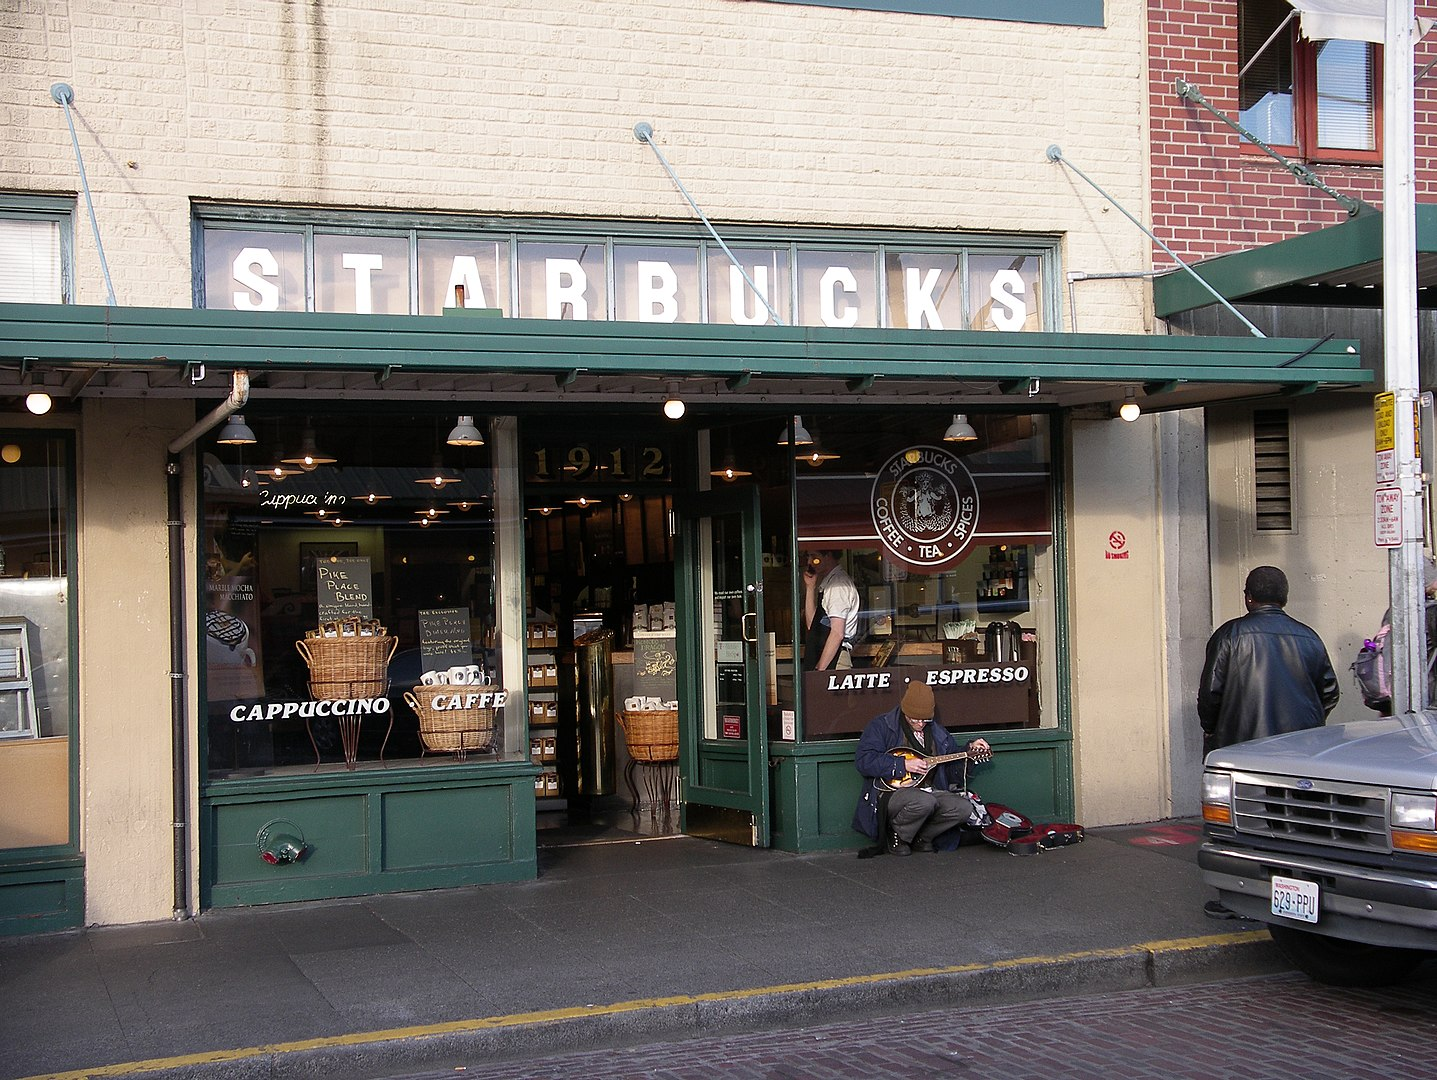 The First Ever Starbucks – Seattle, Washington